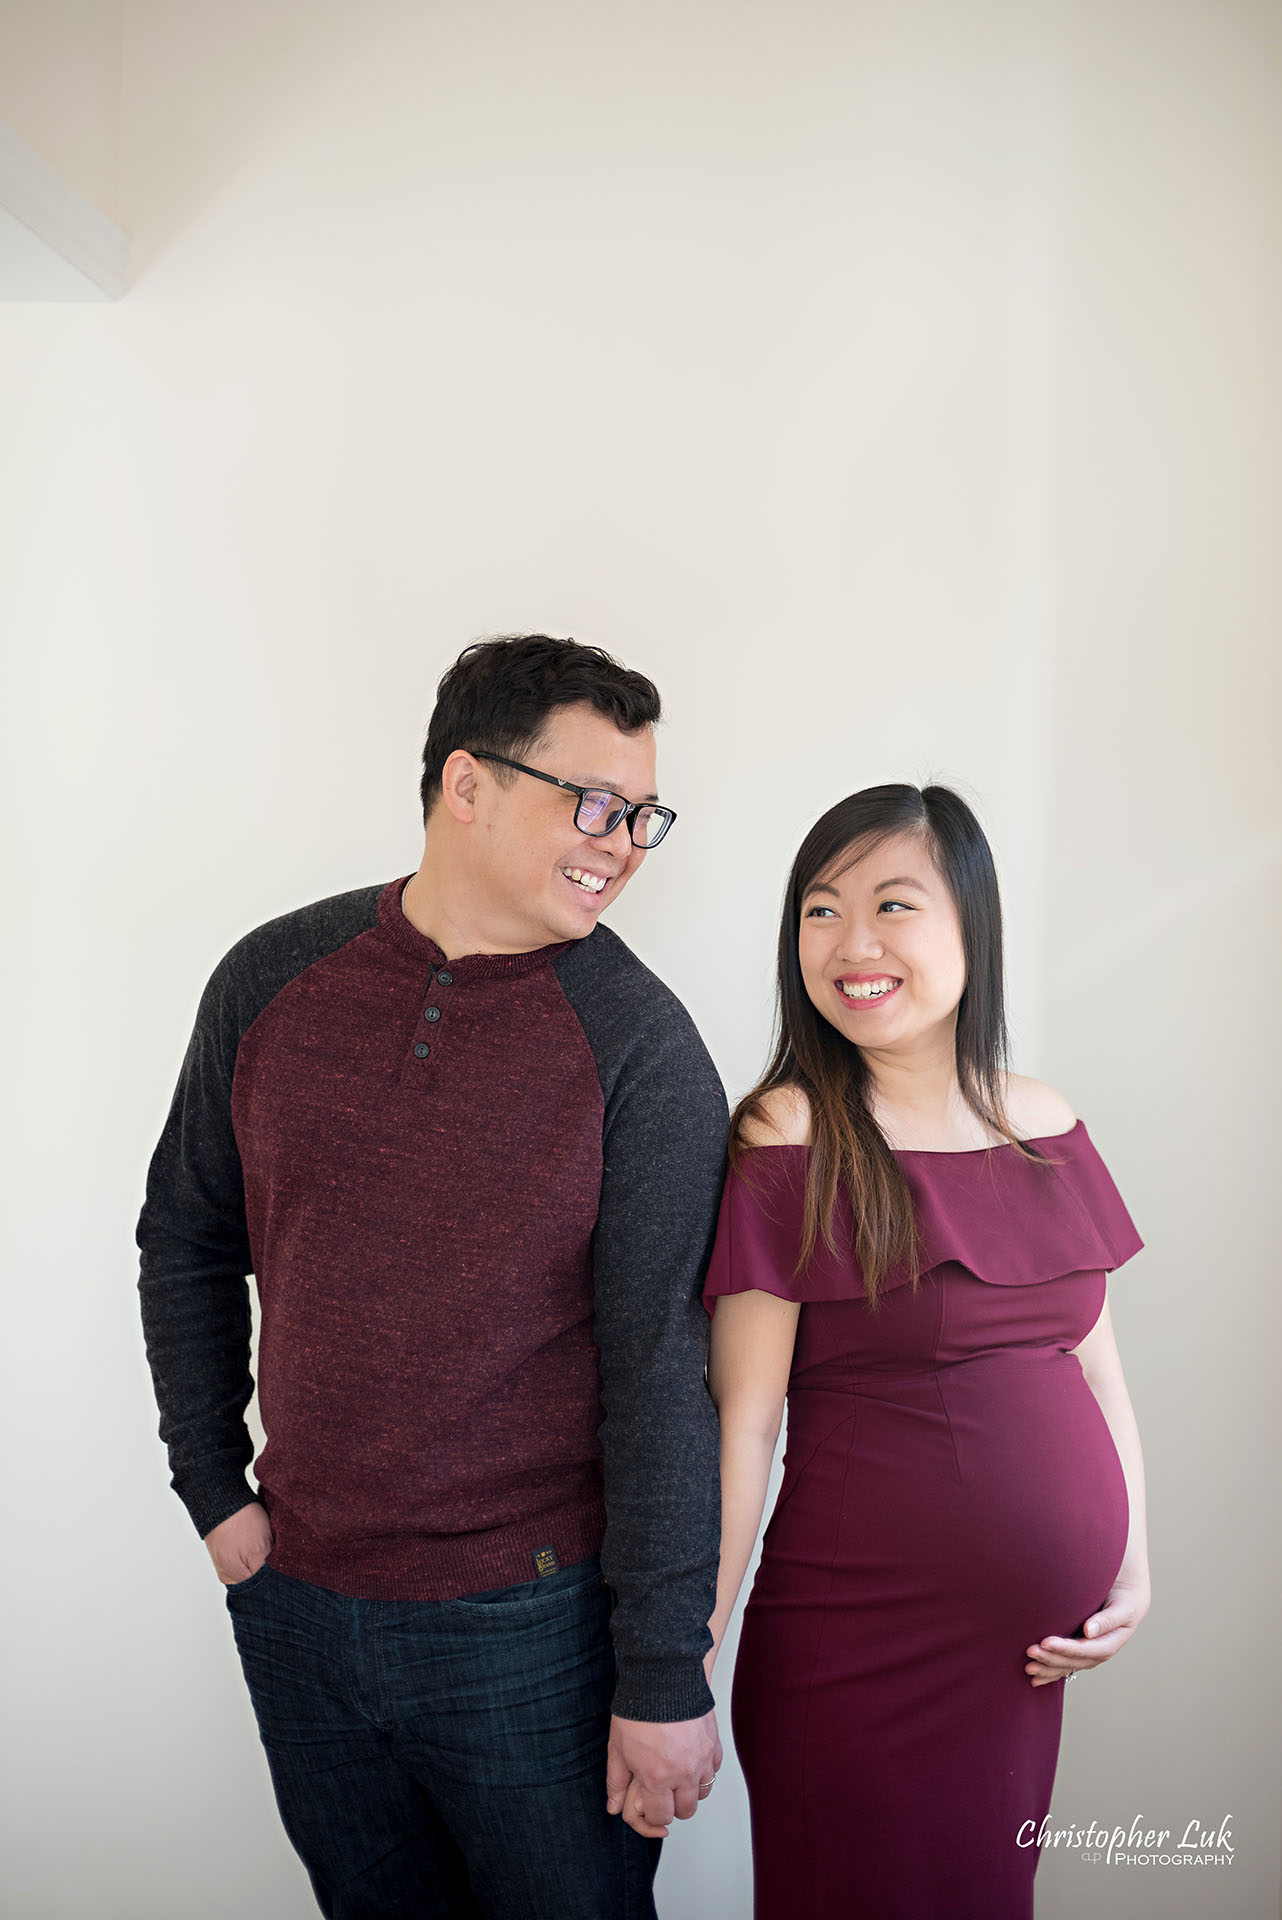 Christopher Luk Toronto Wedding Family Maternity Photographer - Markham Richmond Hill Toronto Natural Candid Photojournalistic Mom Dad Husband Wife Baby Bump Baby Pregnant Pregnancy Smiling Each Other Together